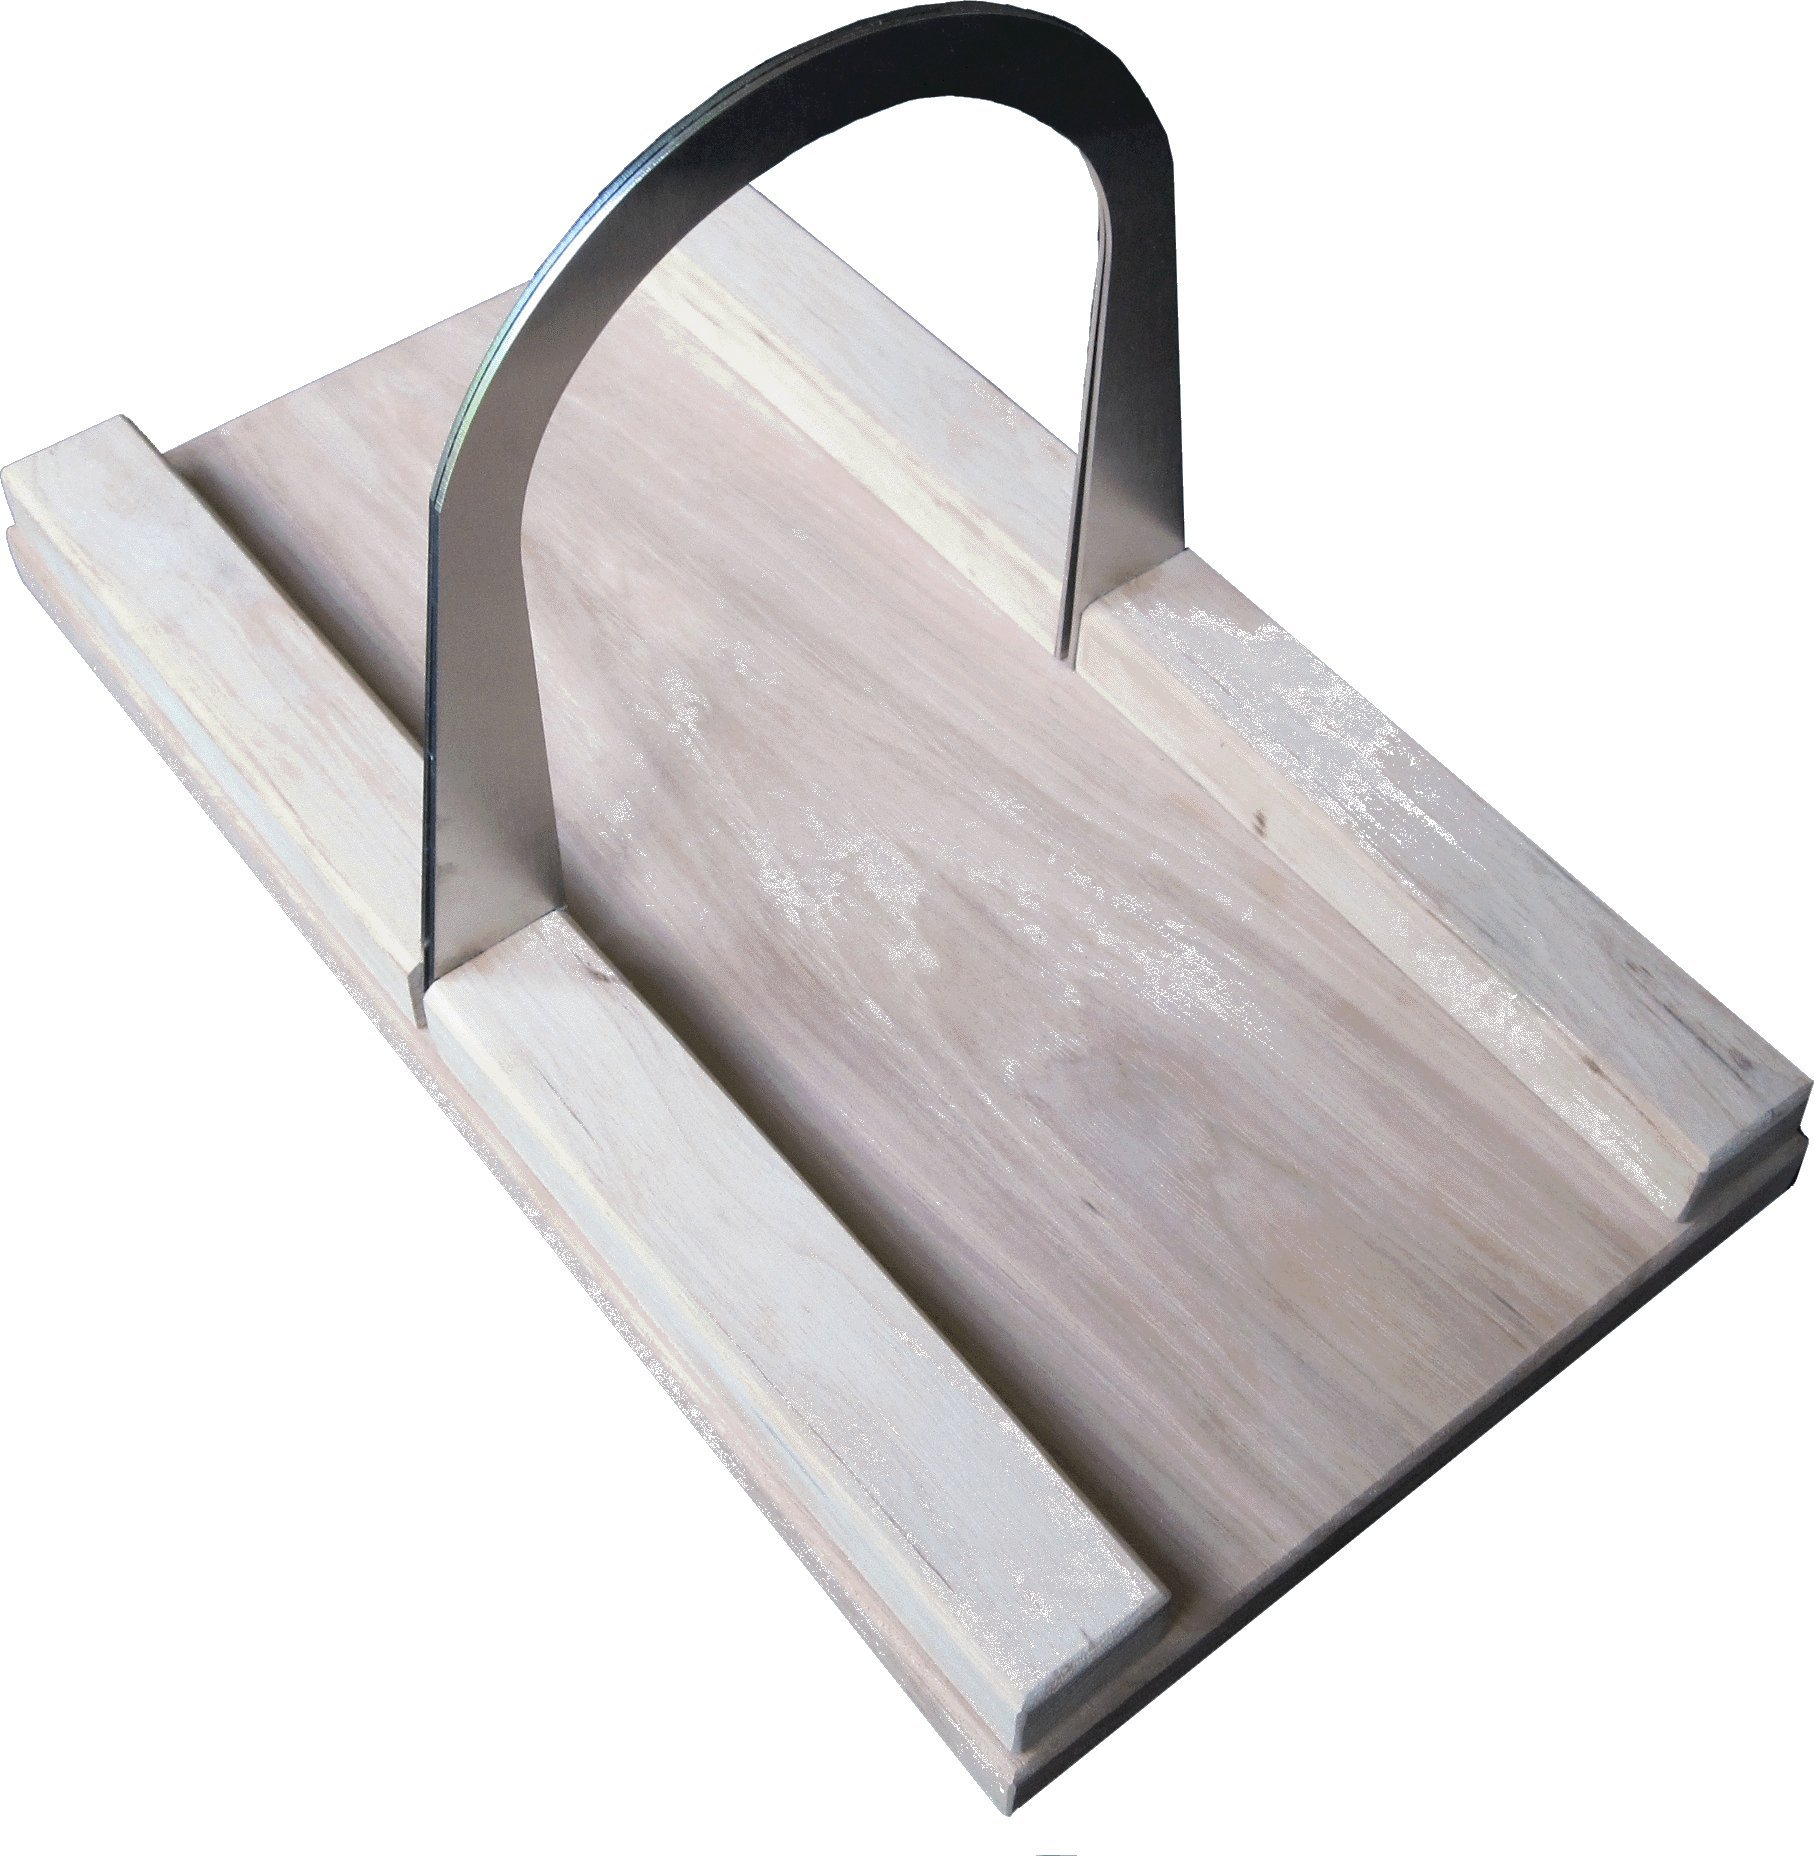 Bread Slicer Hickory Elite, Brushed Stainless Steel Guide and Hickory Wood Bread Board (5 Inch Loaf)